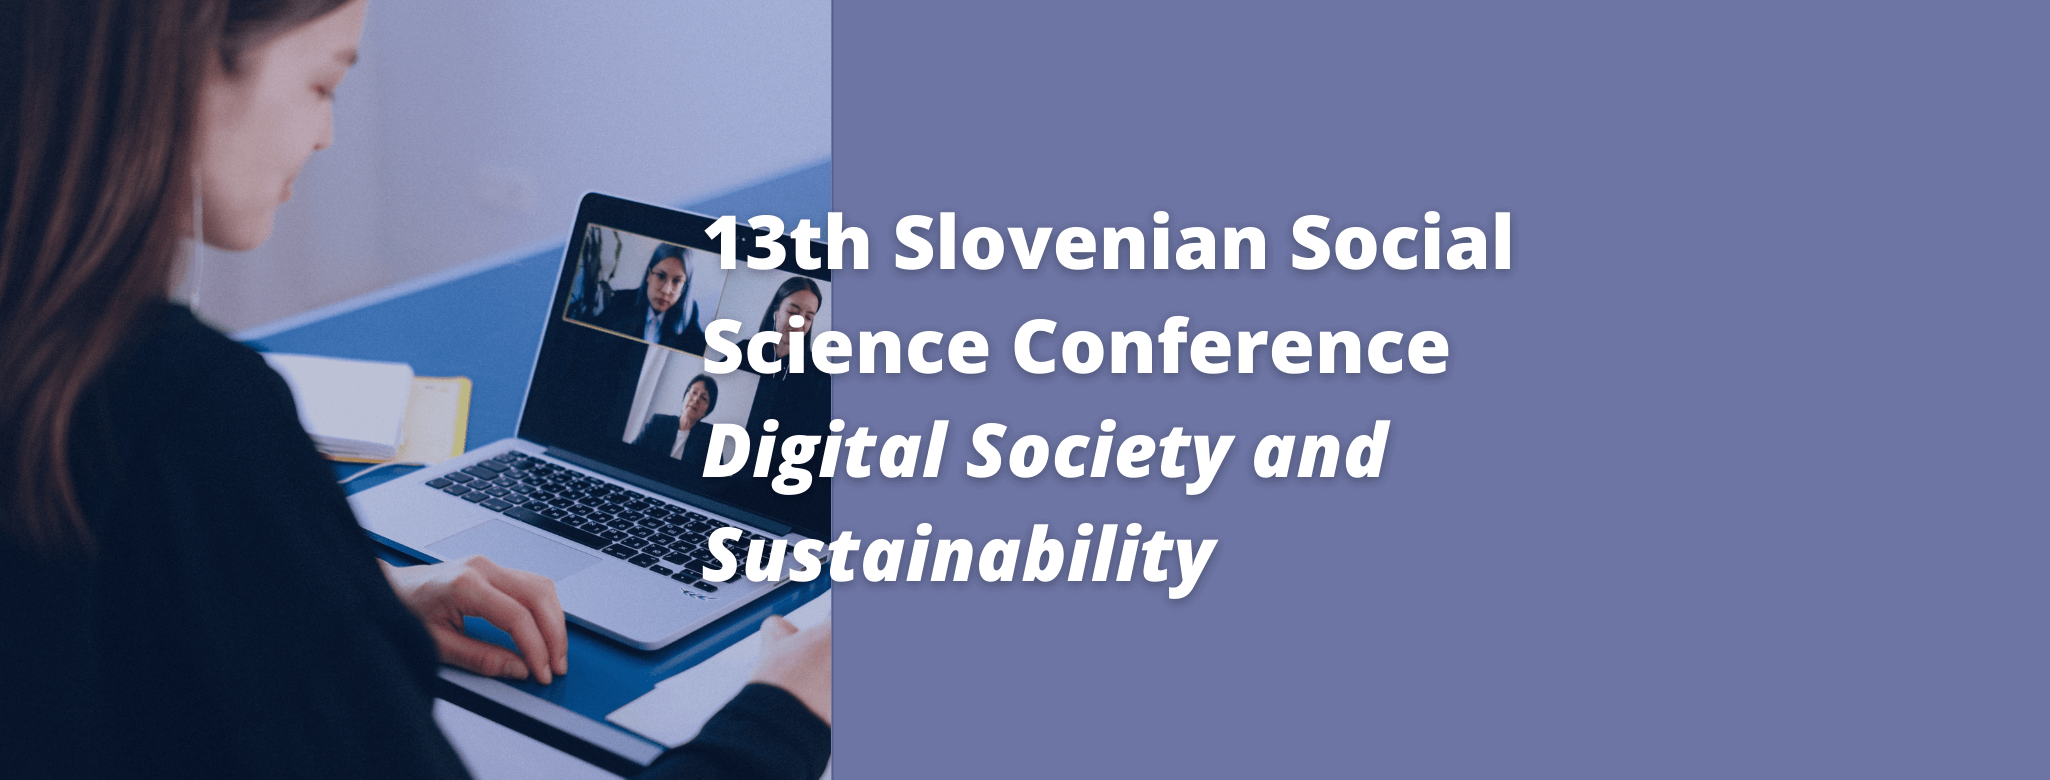 """13th Slovenian Social Science Conference – """"Digital Society and Sustainability"""""""